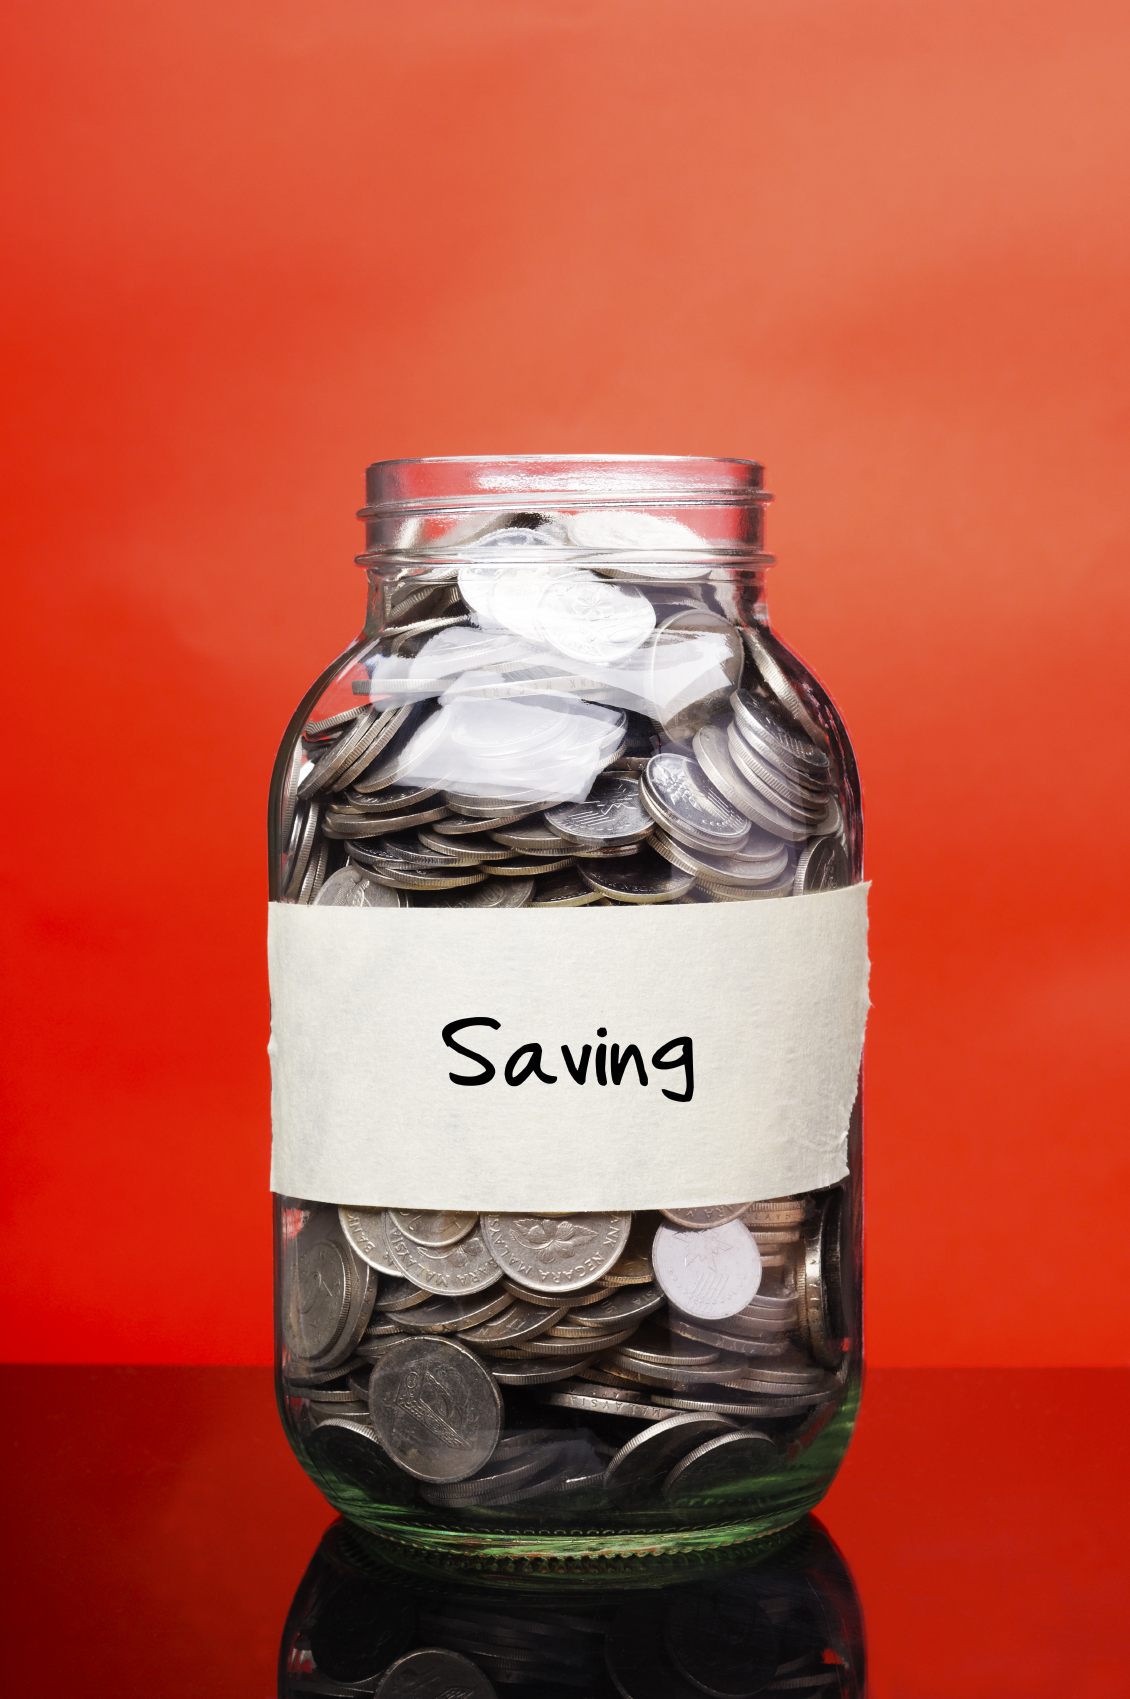 Saving label on glass jar with coins